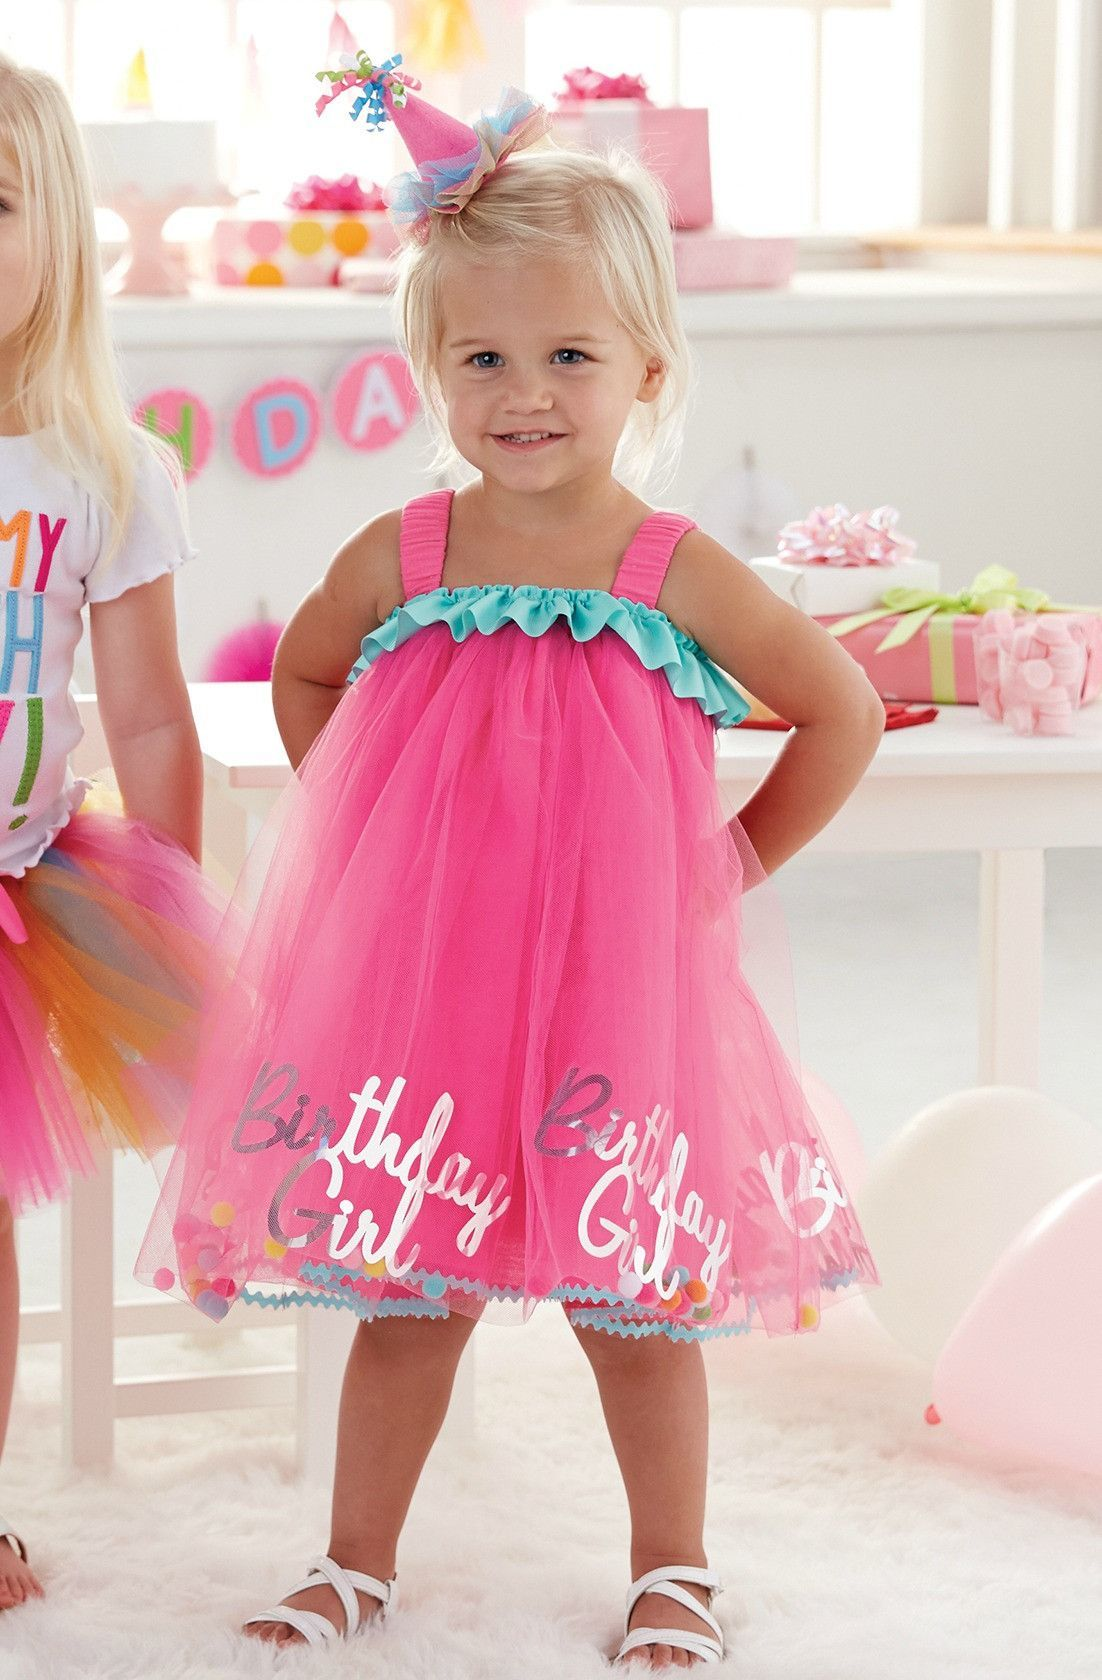 The Perfect Dress For Birthday Girl Cant Say Enough About This